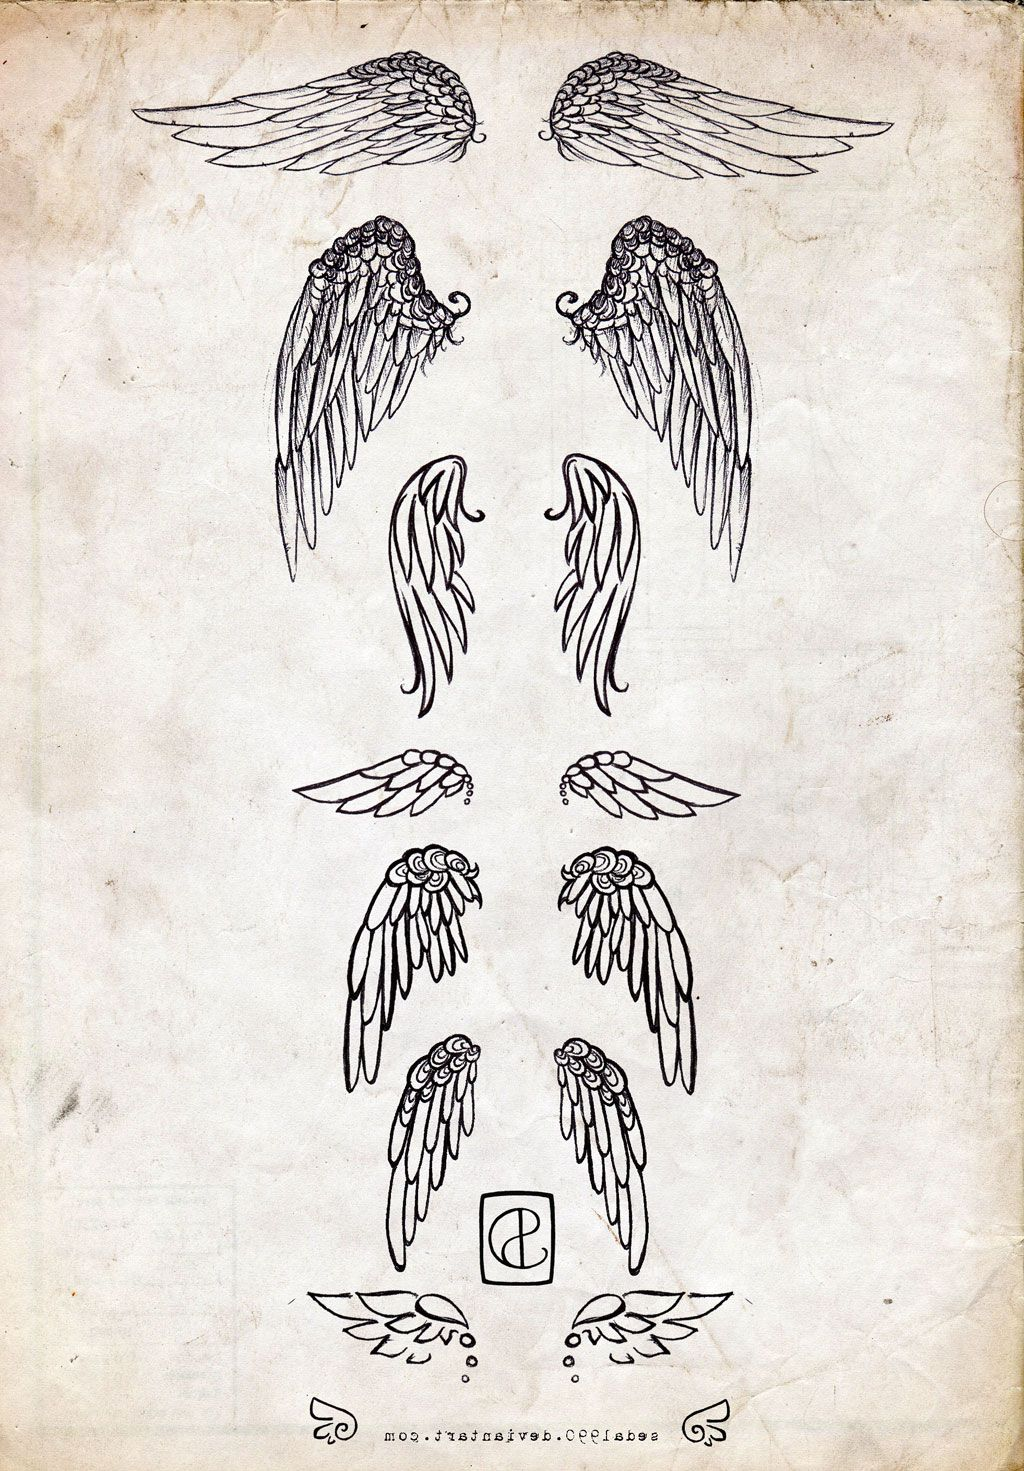 Angel Wings Tattoo Small Simple: The 25+ Best Small Angel Wing Tattoos Ideas On Pinterest